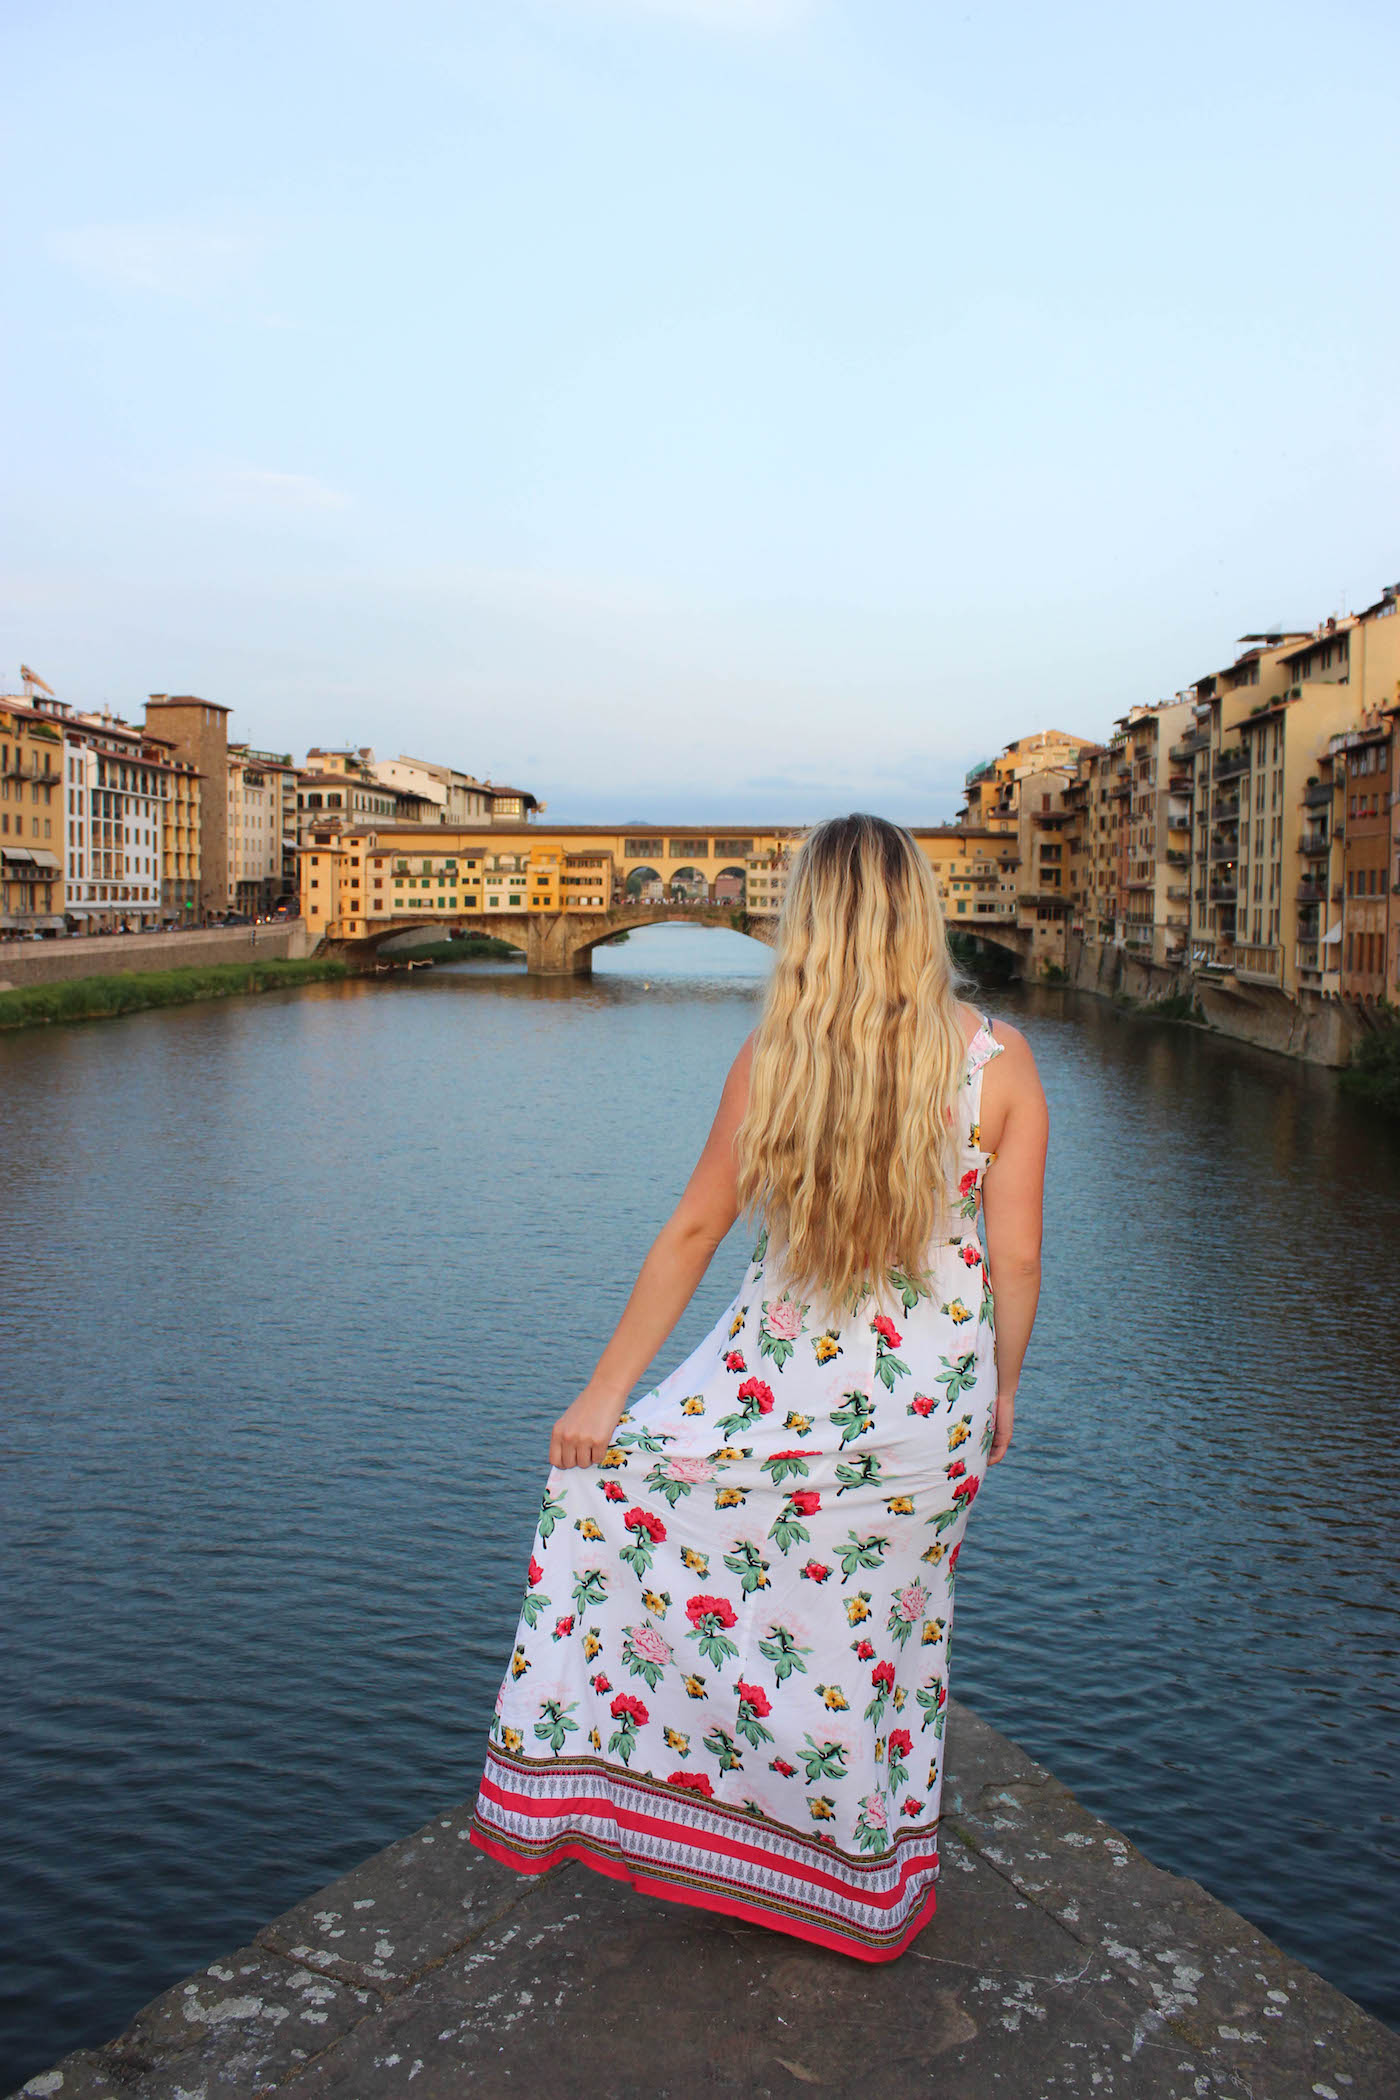 Floral Printed Maxi Dress in Florence, Italy